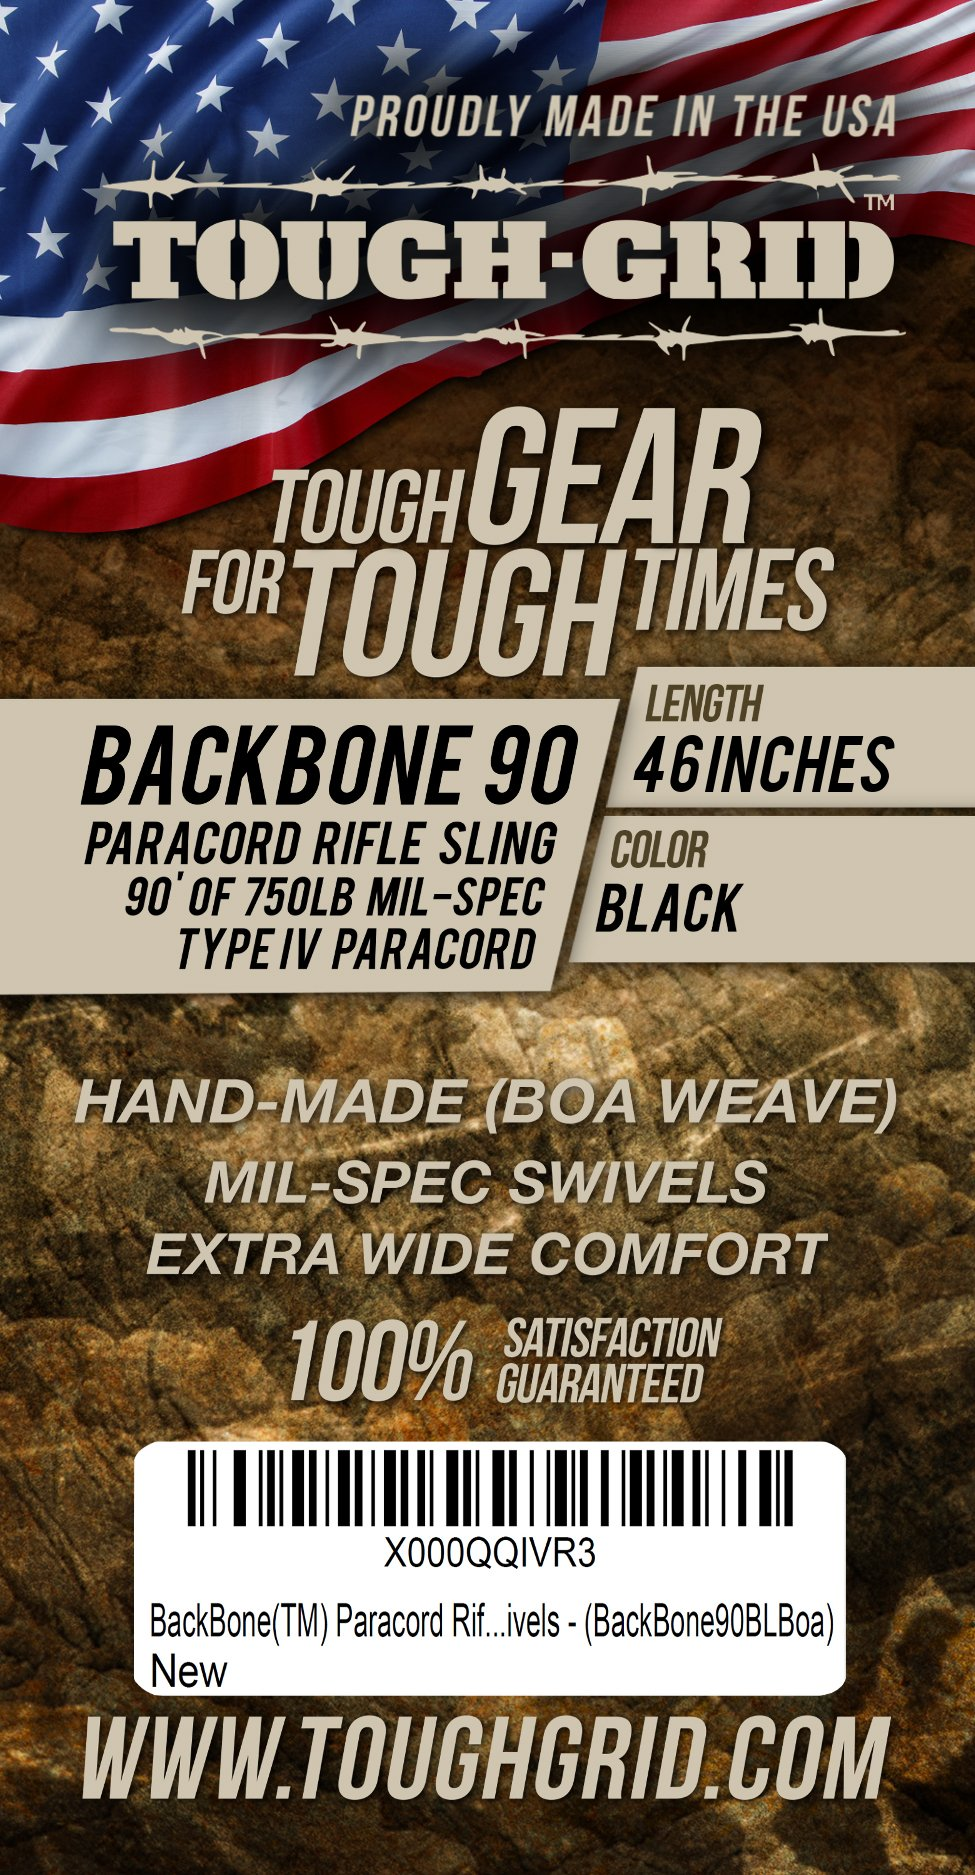 TOUGH-GRID BackBone Paracord Rifle Sling made with Mil-Spec 750lb Type IV Paracord and Swivels, Black by TOUGH-GRID (Image #4)